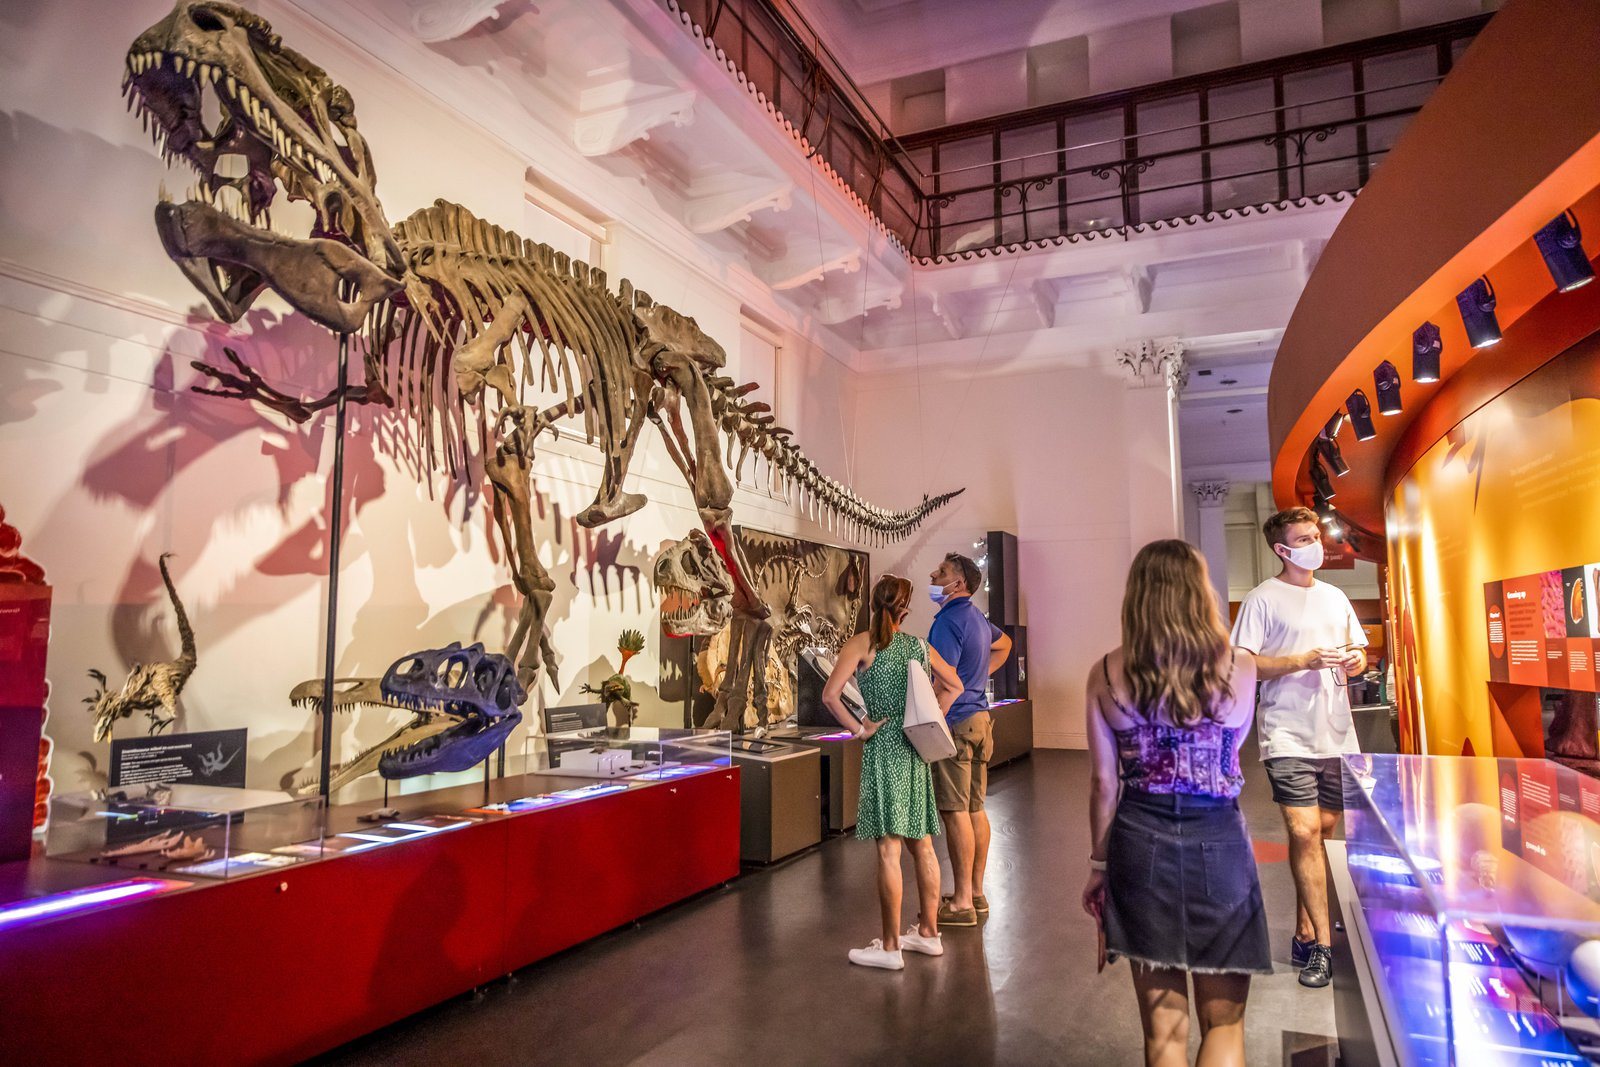 Visitors in the Dinosaur Exhibition during Nights at the Museum